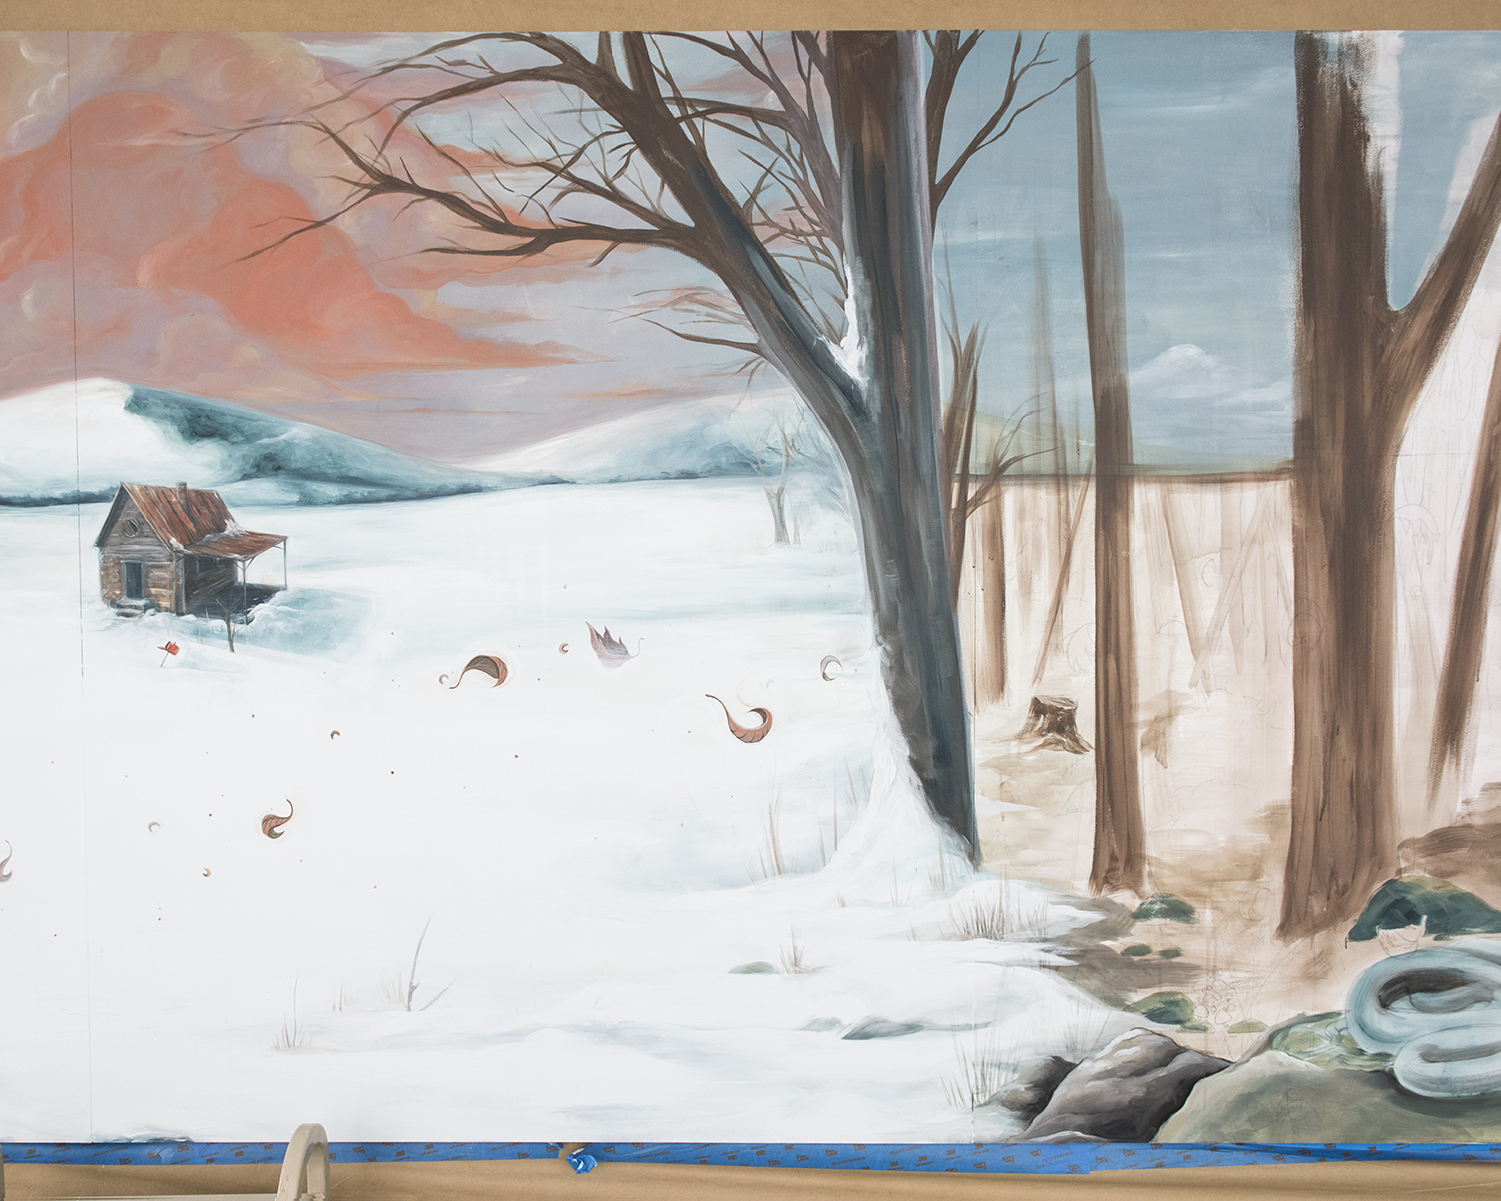 Finished cabin and sky on the left. Underpainting on trees to the right.